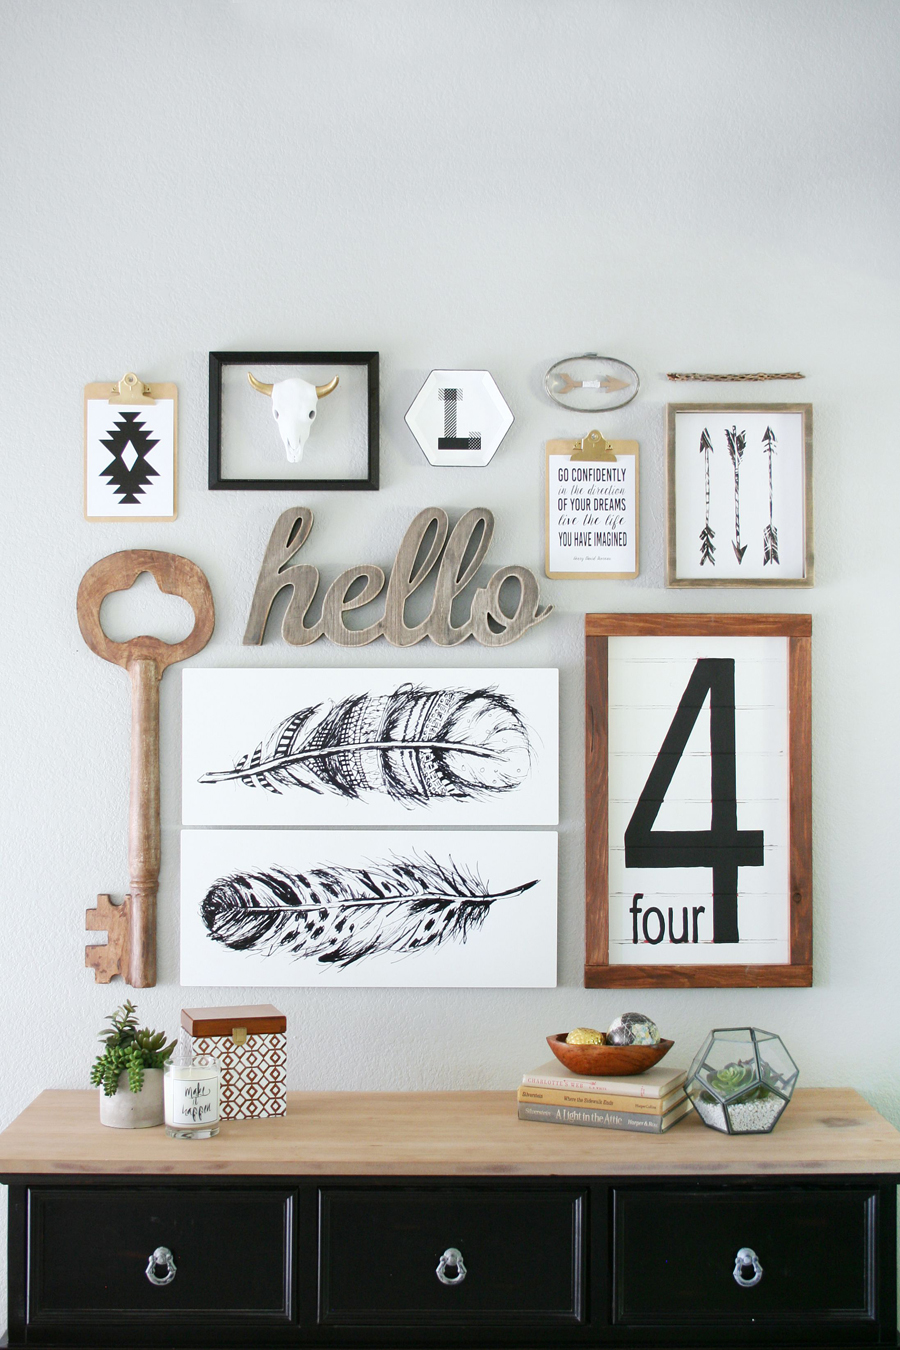 Marvelous Create Meaningful Decor with Shutterfly